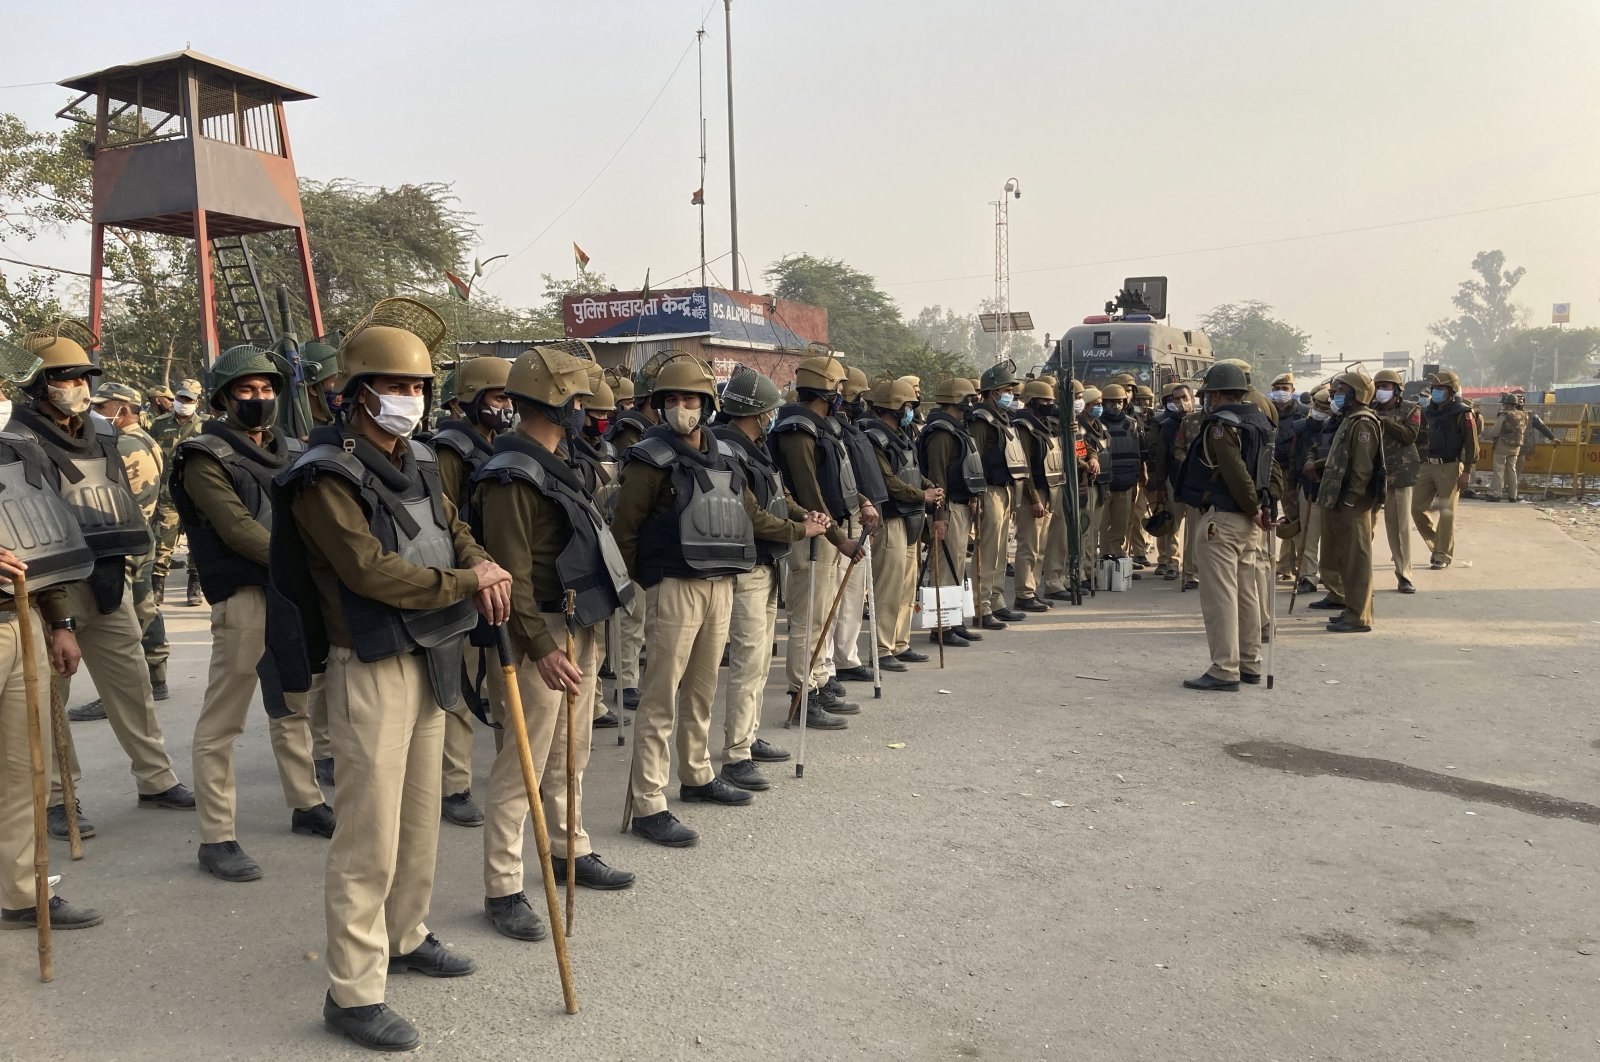 Indian policemen receive a briefing from their officer during a blockade by Indian farmers at the Delhi-Haryana state border, India, Nov. 30, 2020. (AP Photo)